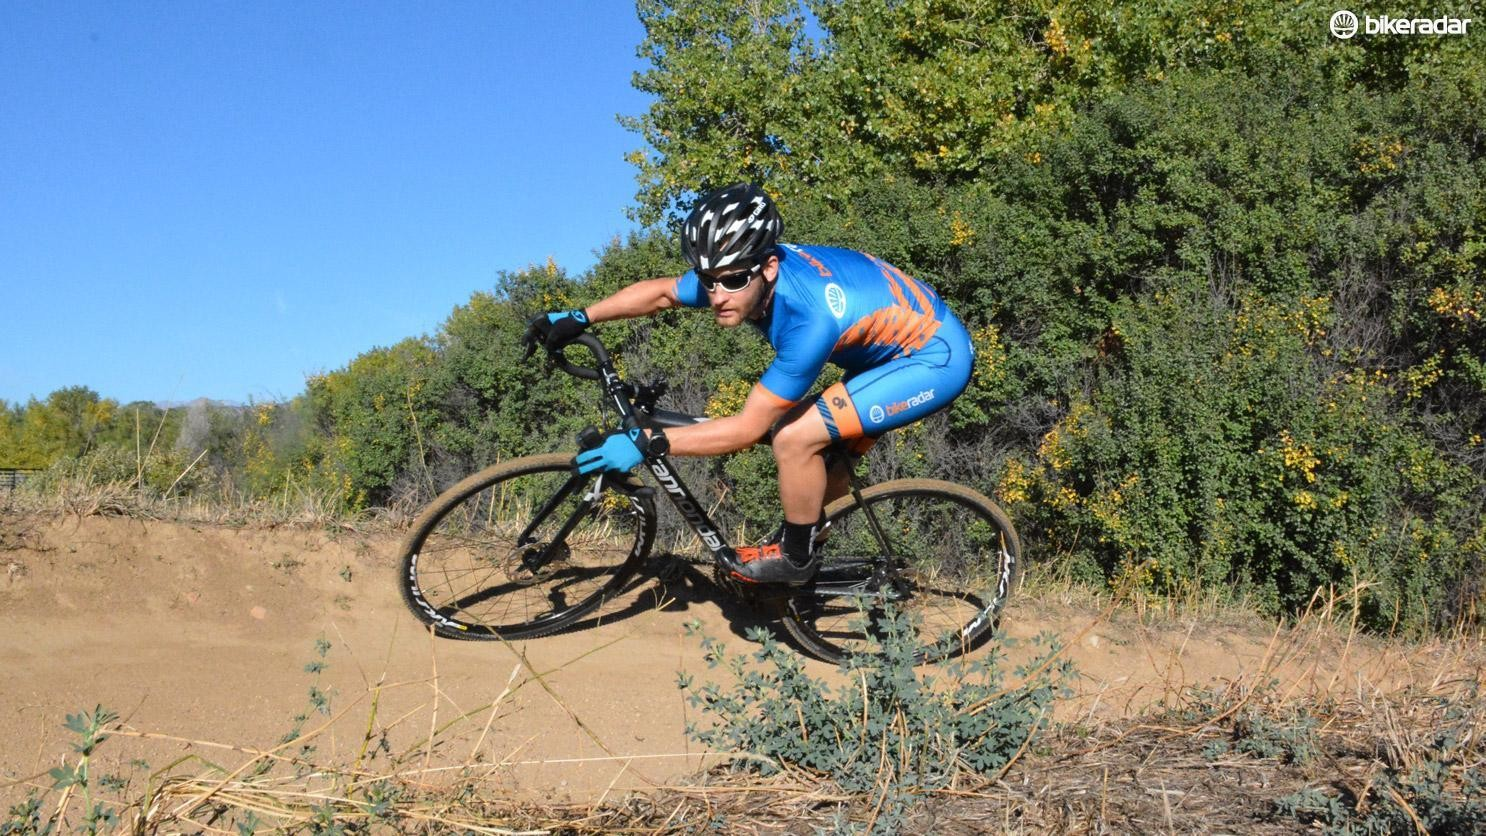 Tires are everything in cyclocross, but the pressure is just as important as the tread design